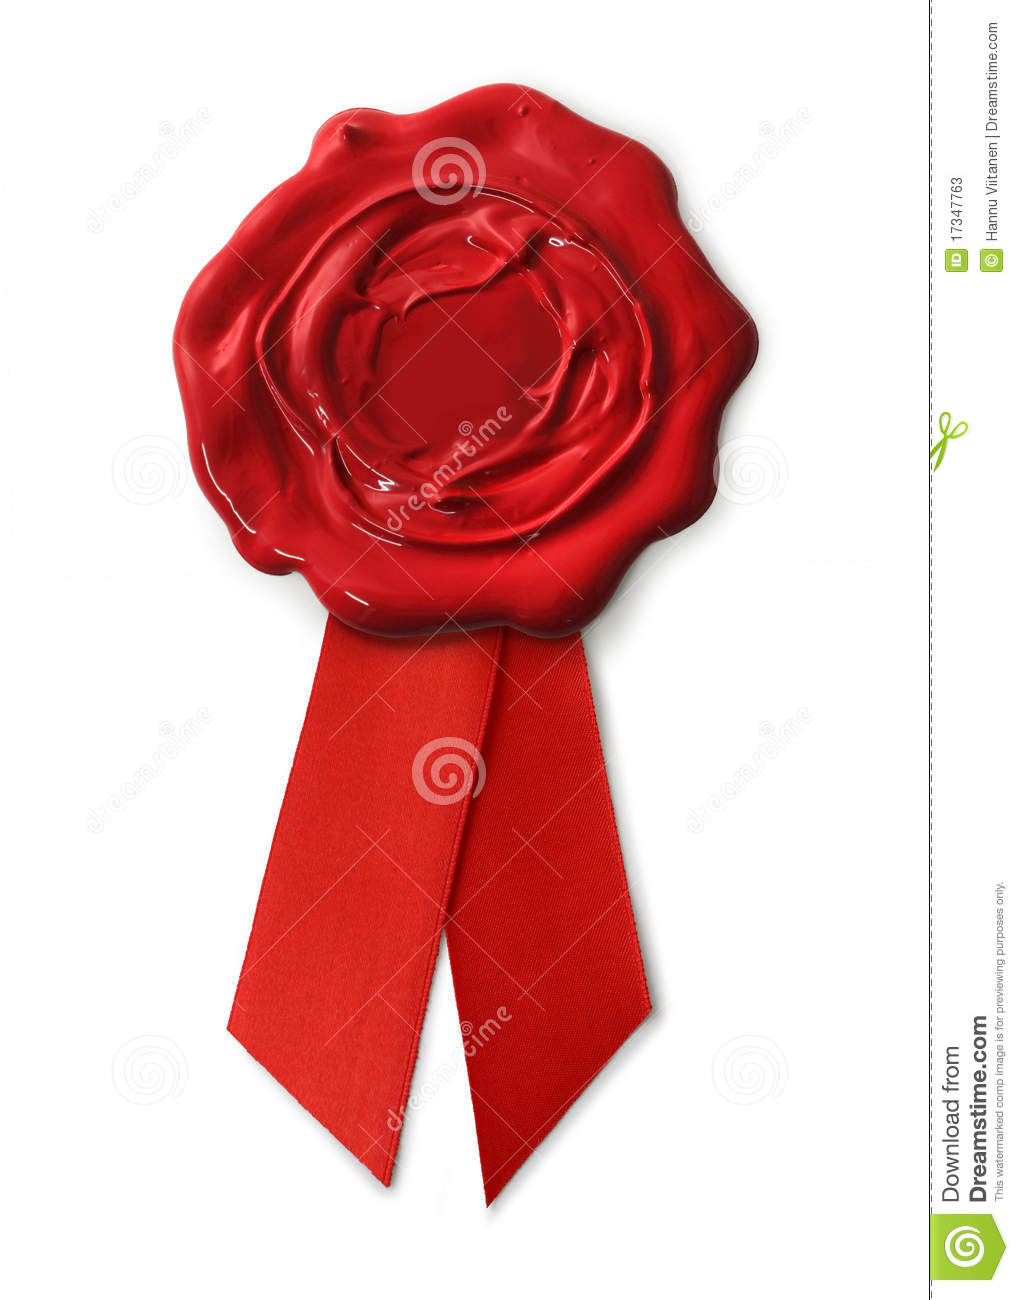 red wax seal with ribbons stock image  image of seal